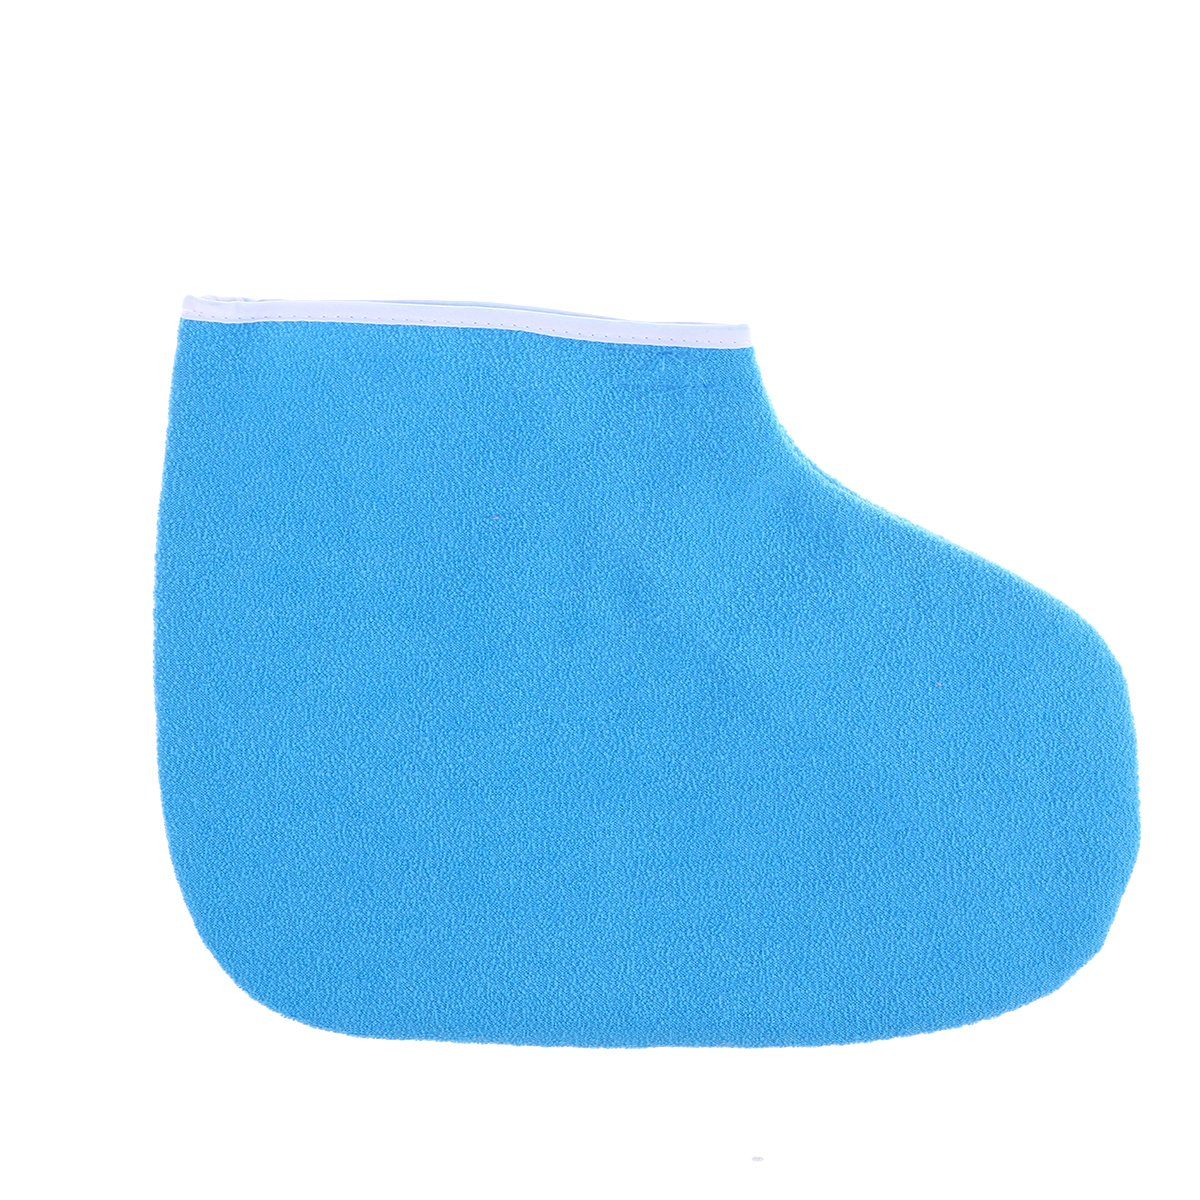 Healifty Paraffin Wax Booties Manicure Pedicure Treatment Booties (Blue)